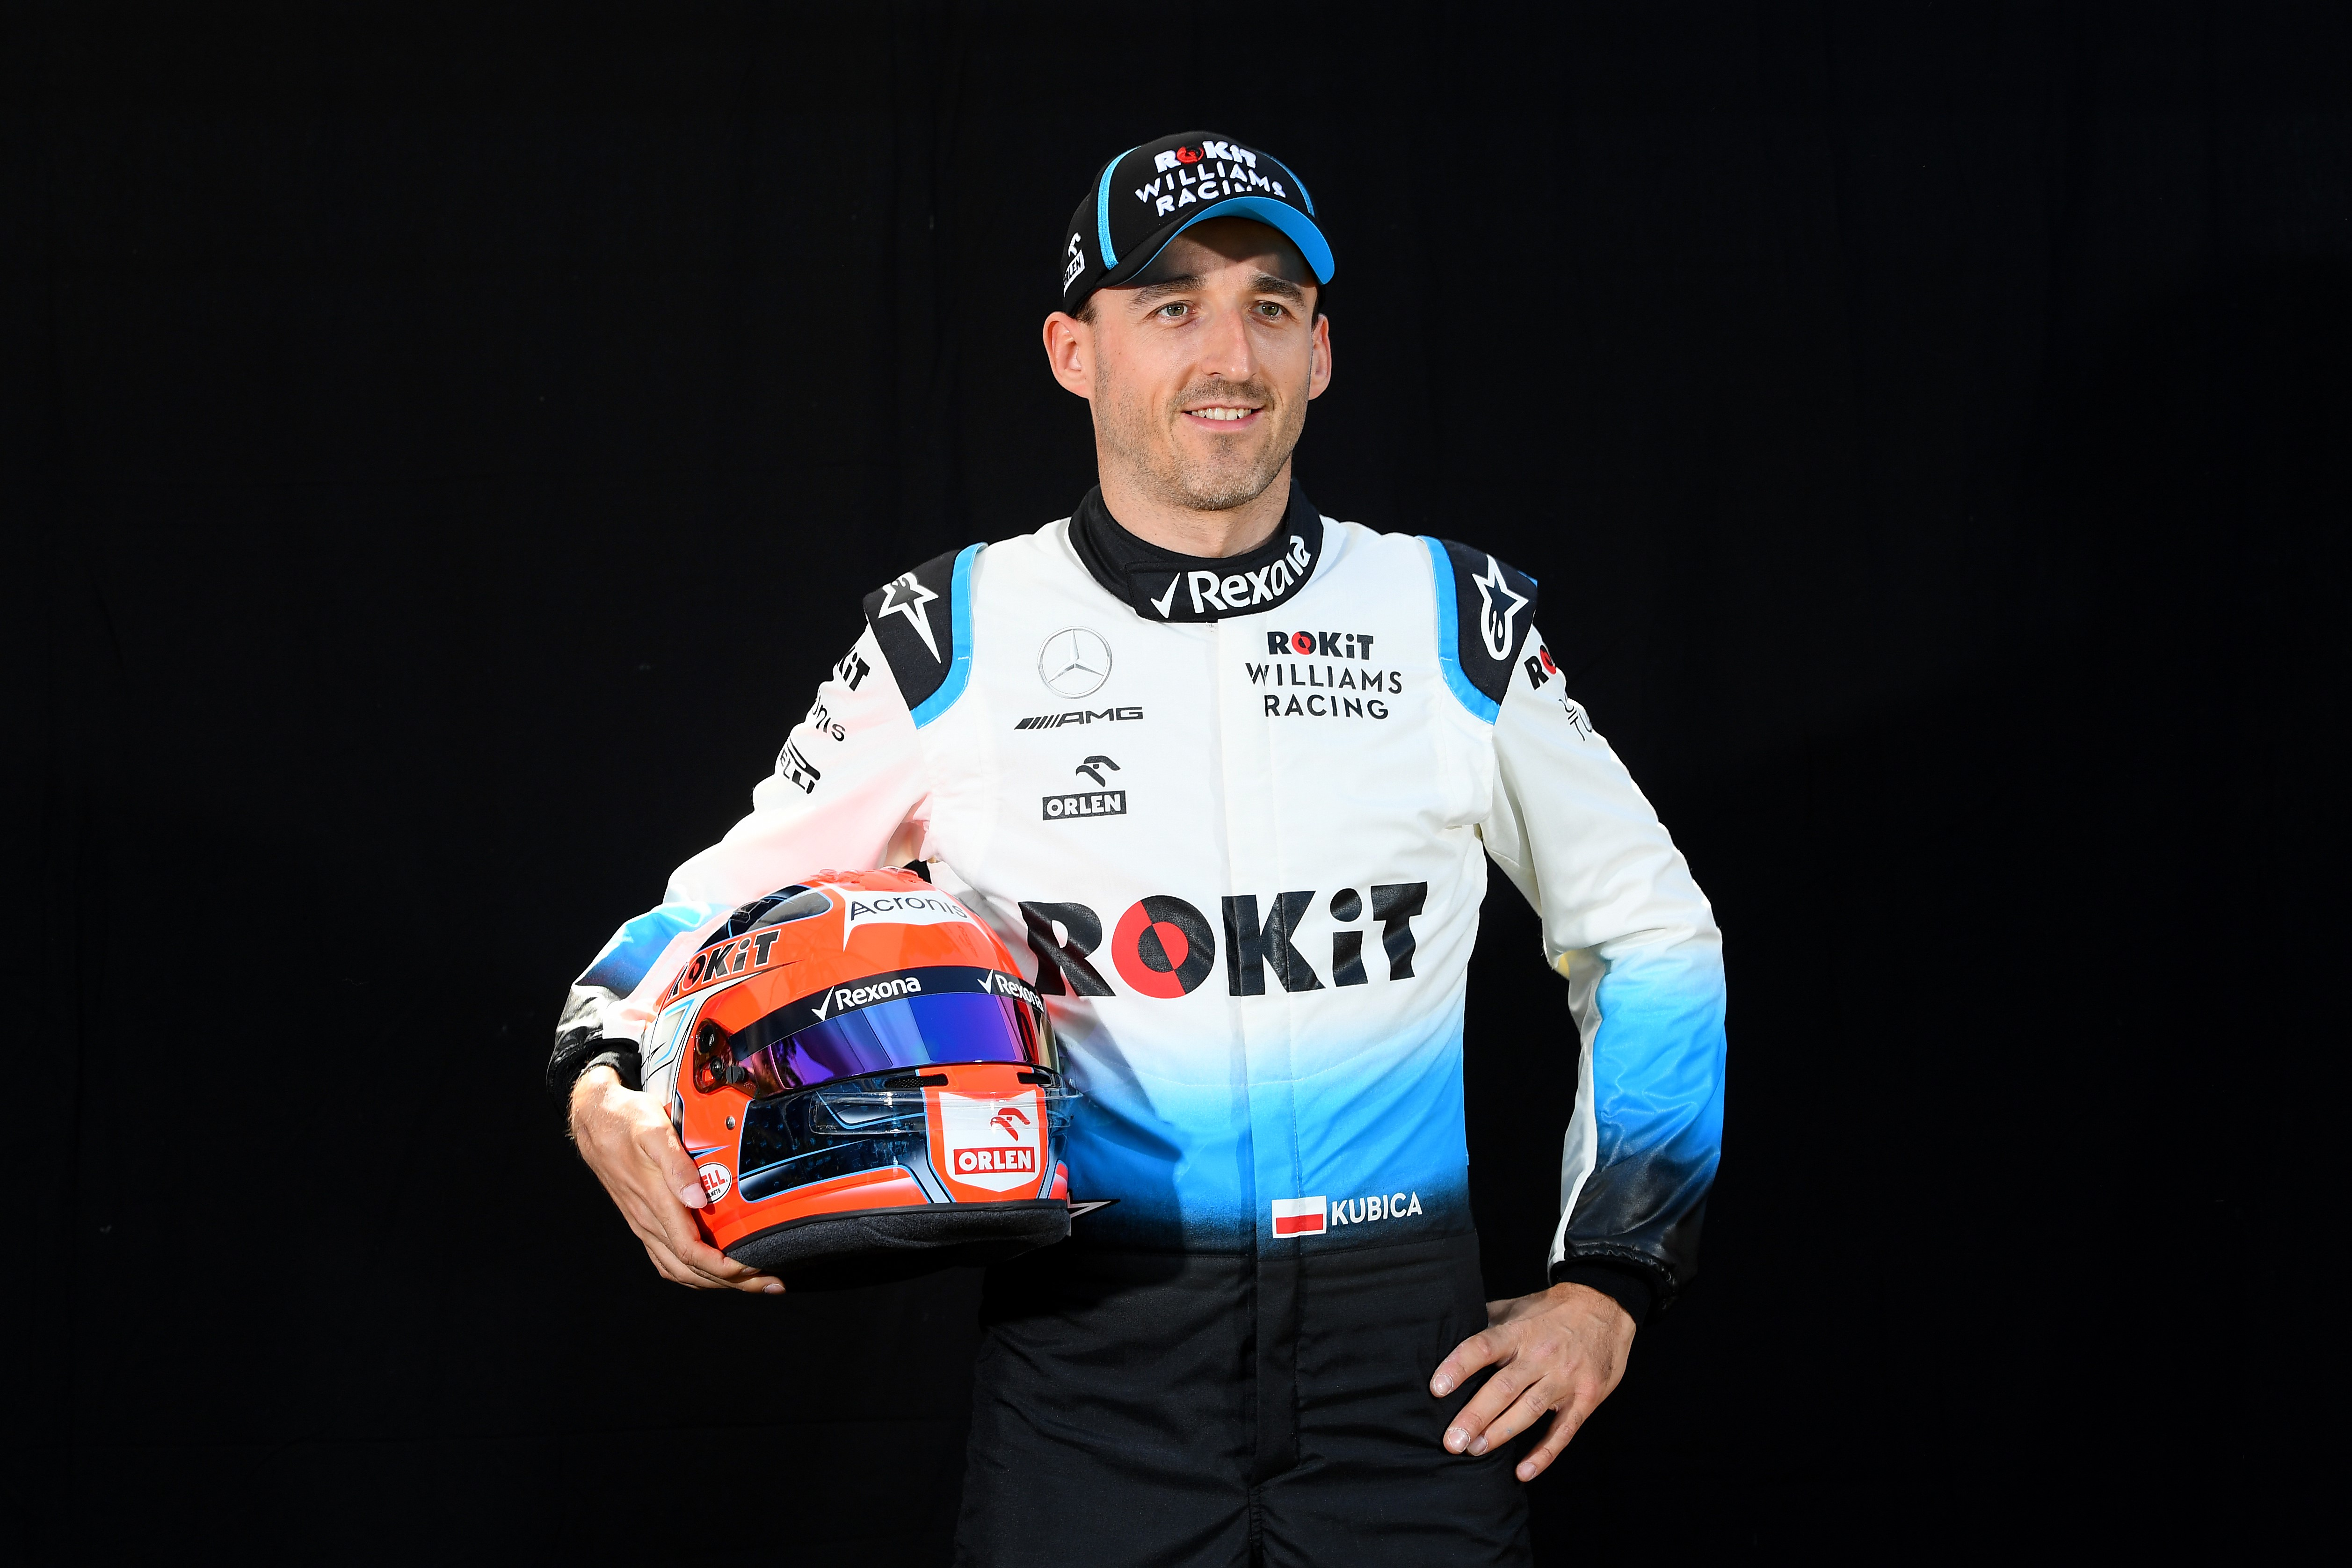 Robert Kubica of Poland and Williams poses for a photo during previews ahead of the F1 Grand Prix of Australia at Melbourne Grand Prix Circuit on March 14, 2019